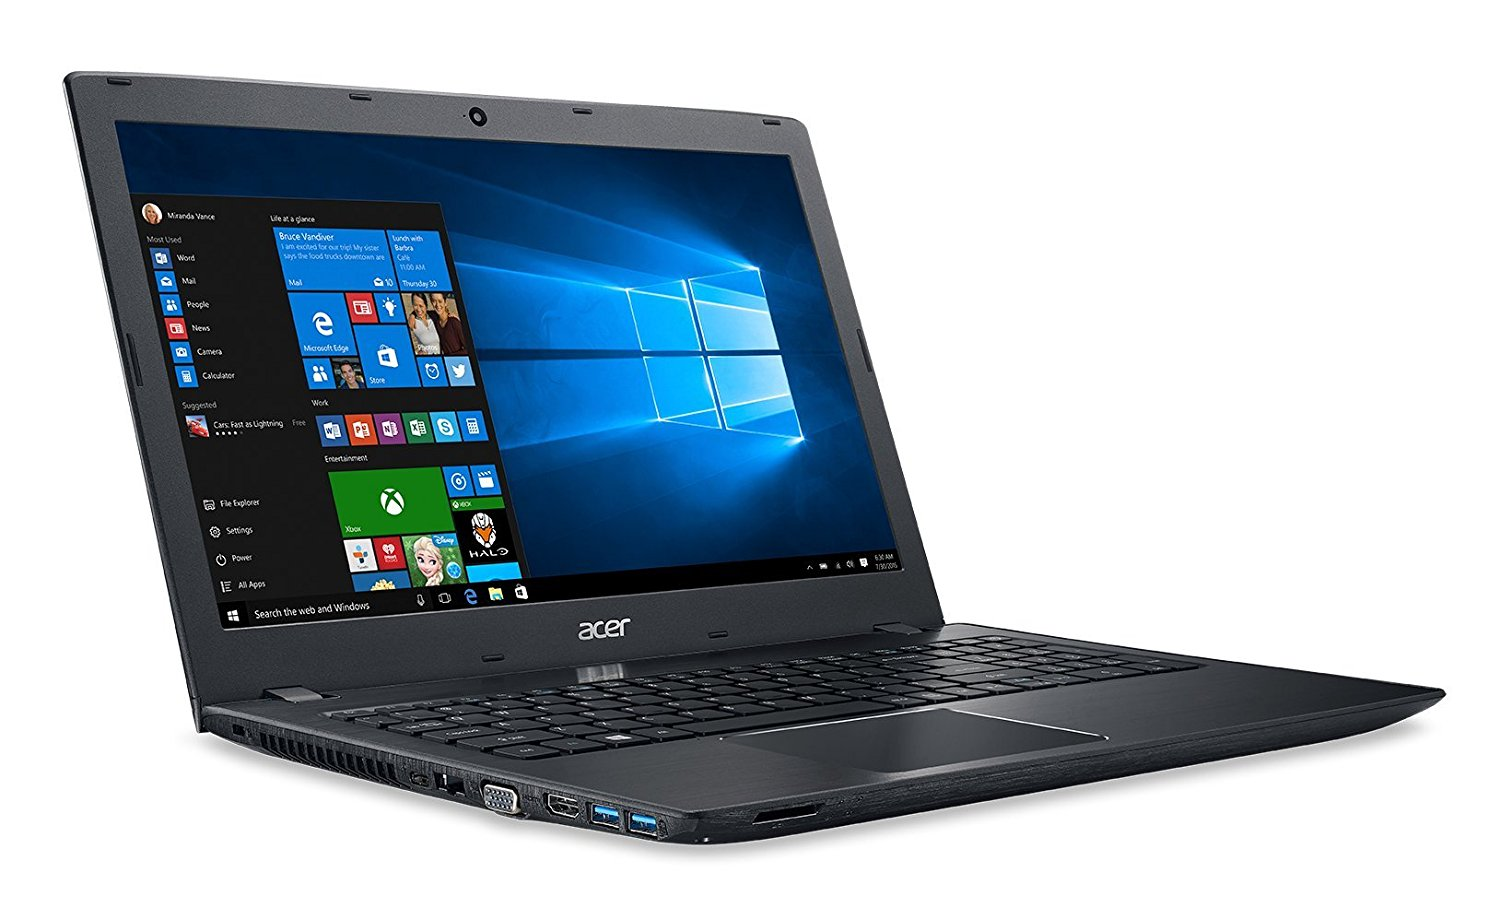 Acer E5-553 15.6-inch Laptop Image